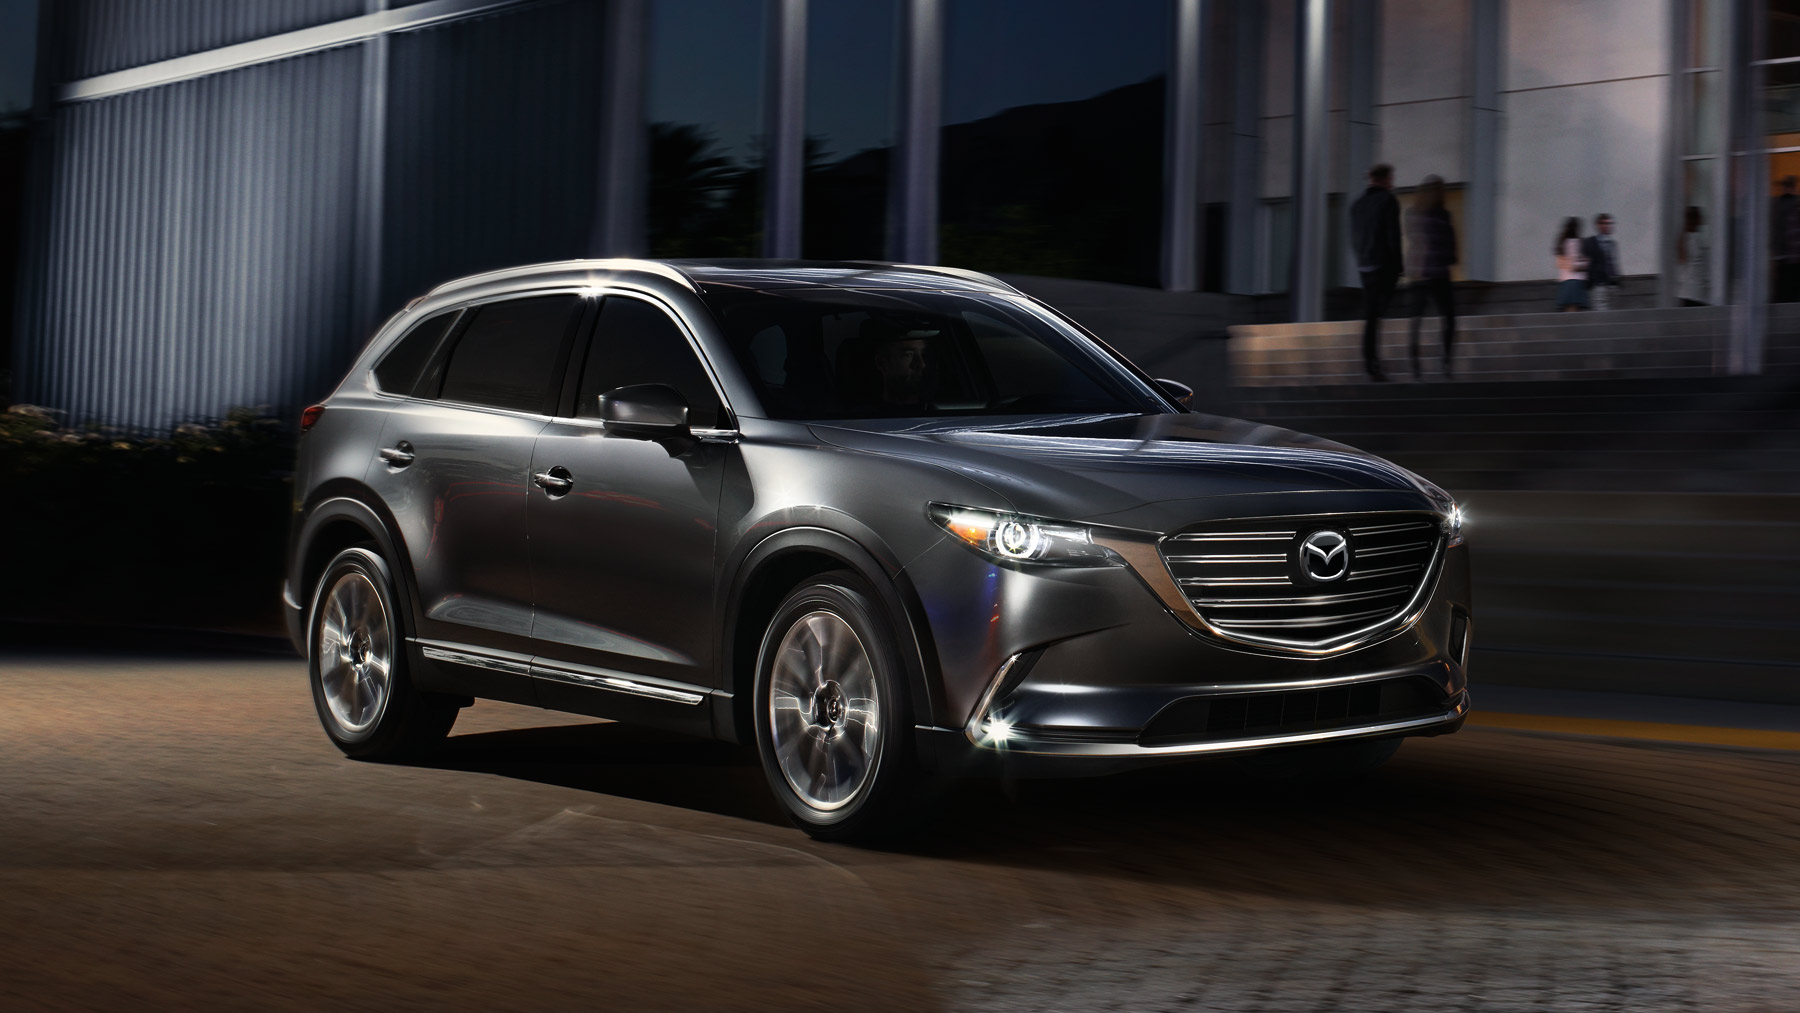 2017 Mazda CX-9 for Sale in Elk Grove, CA - Mazda of Elk Grove